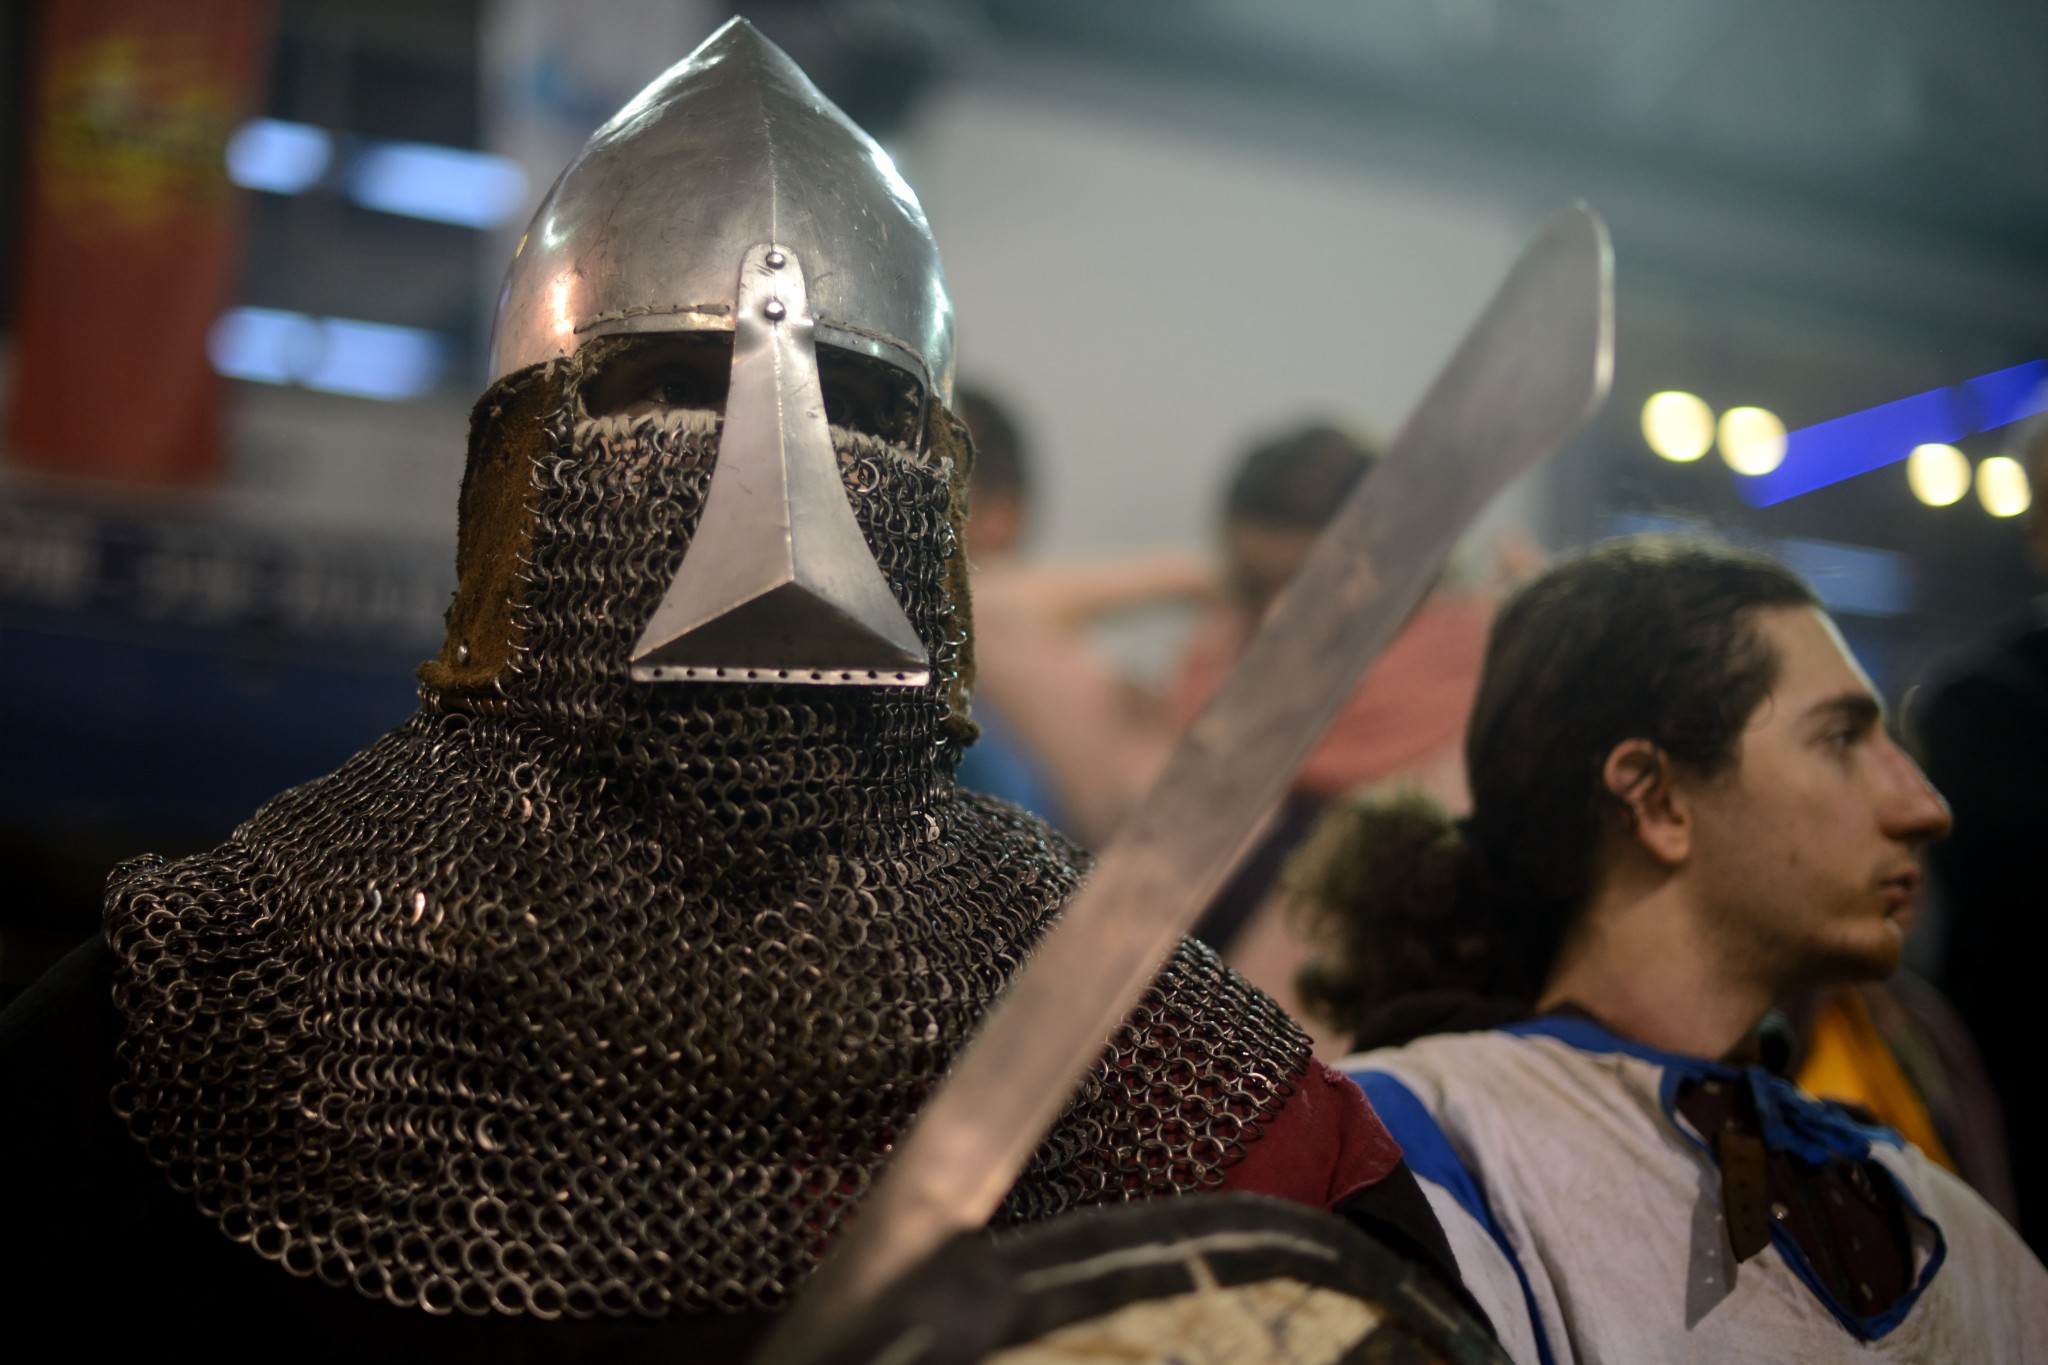 Medieval Fighting fighters ready to go into the arena in the World Medieval Fighting Championship WMFC-Israeli challenge on Jan. 23, 2016. Photo by Gili Yaari/FLASH90